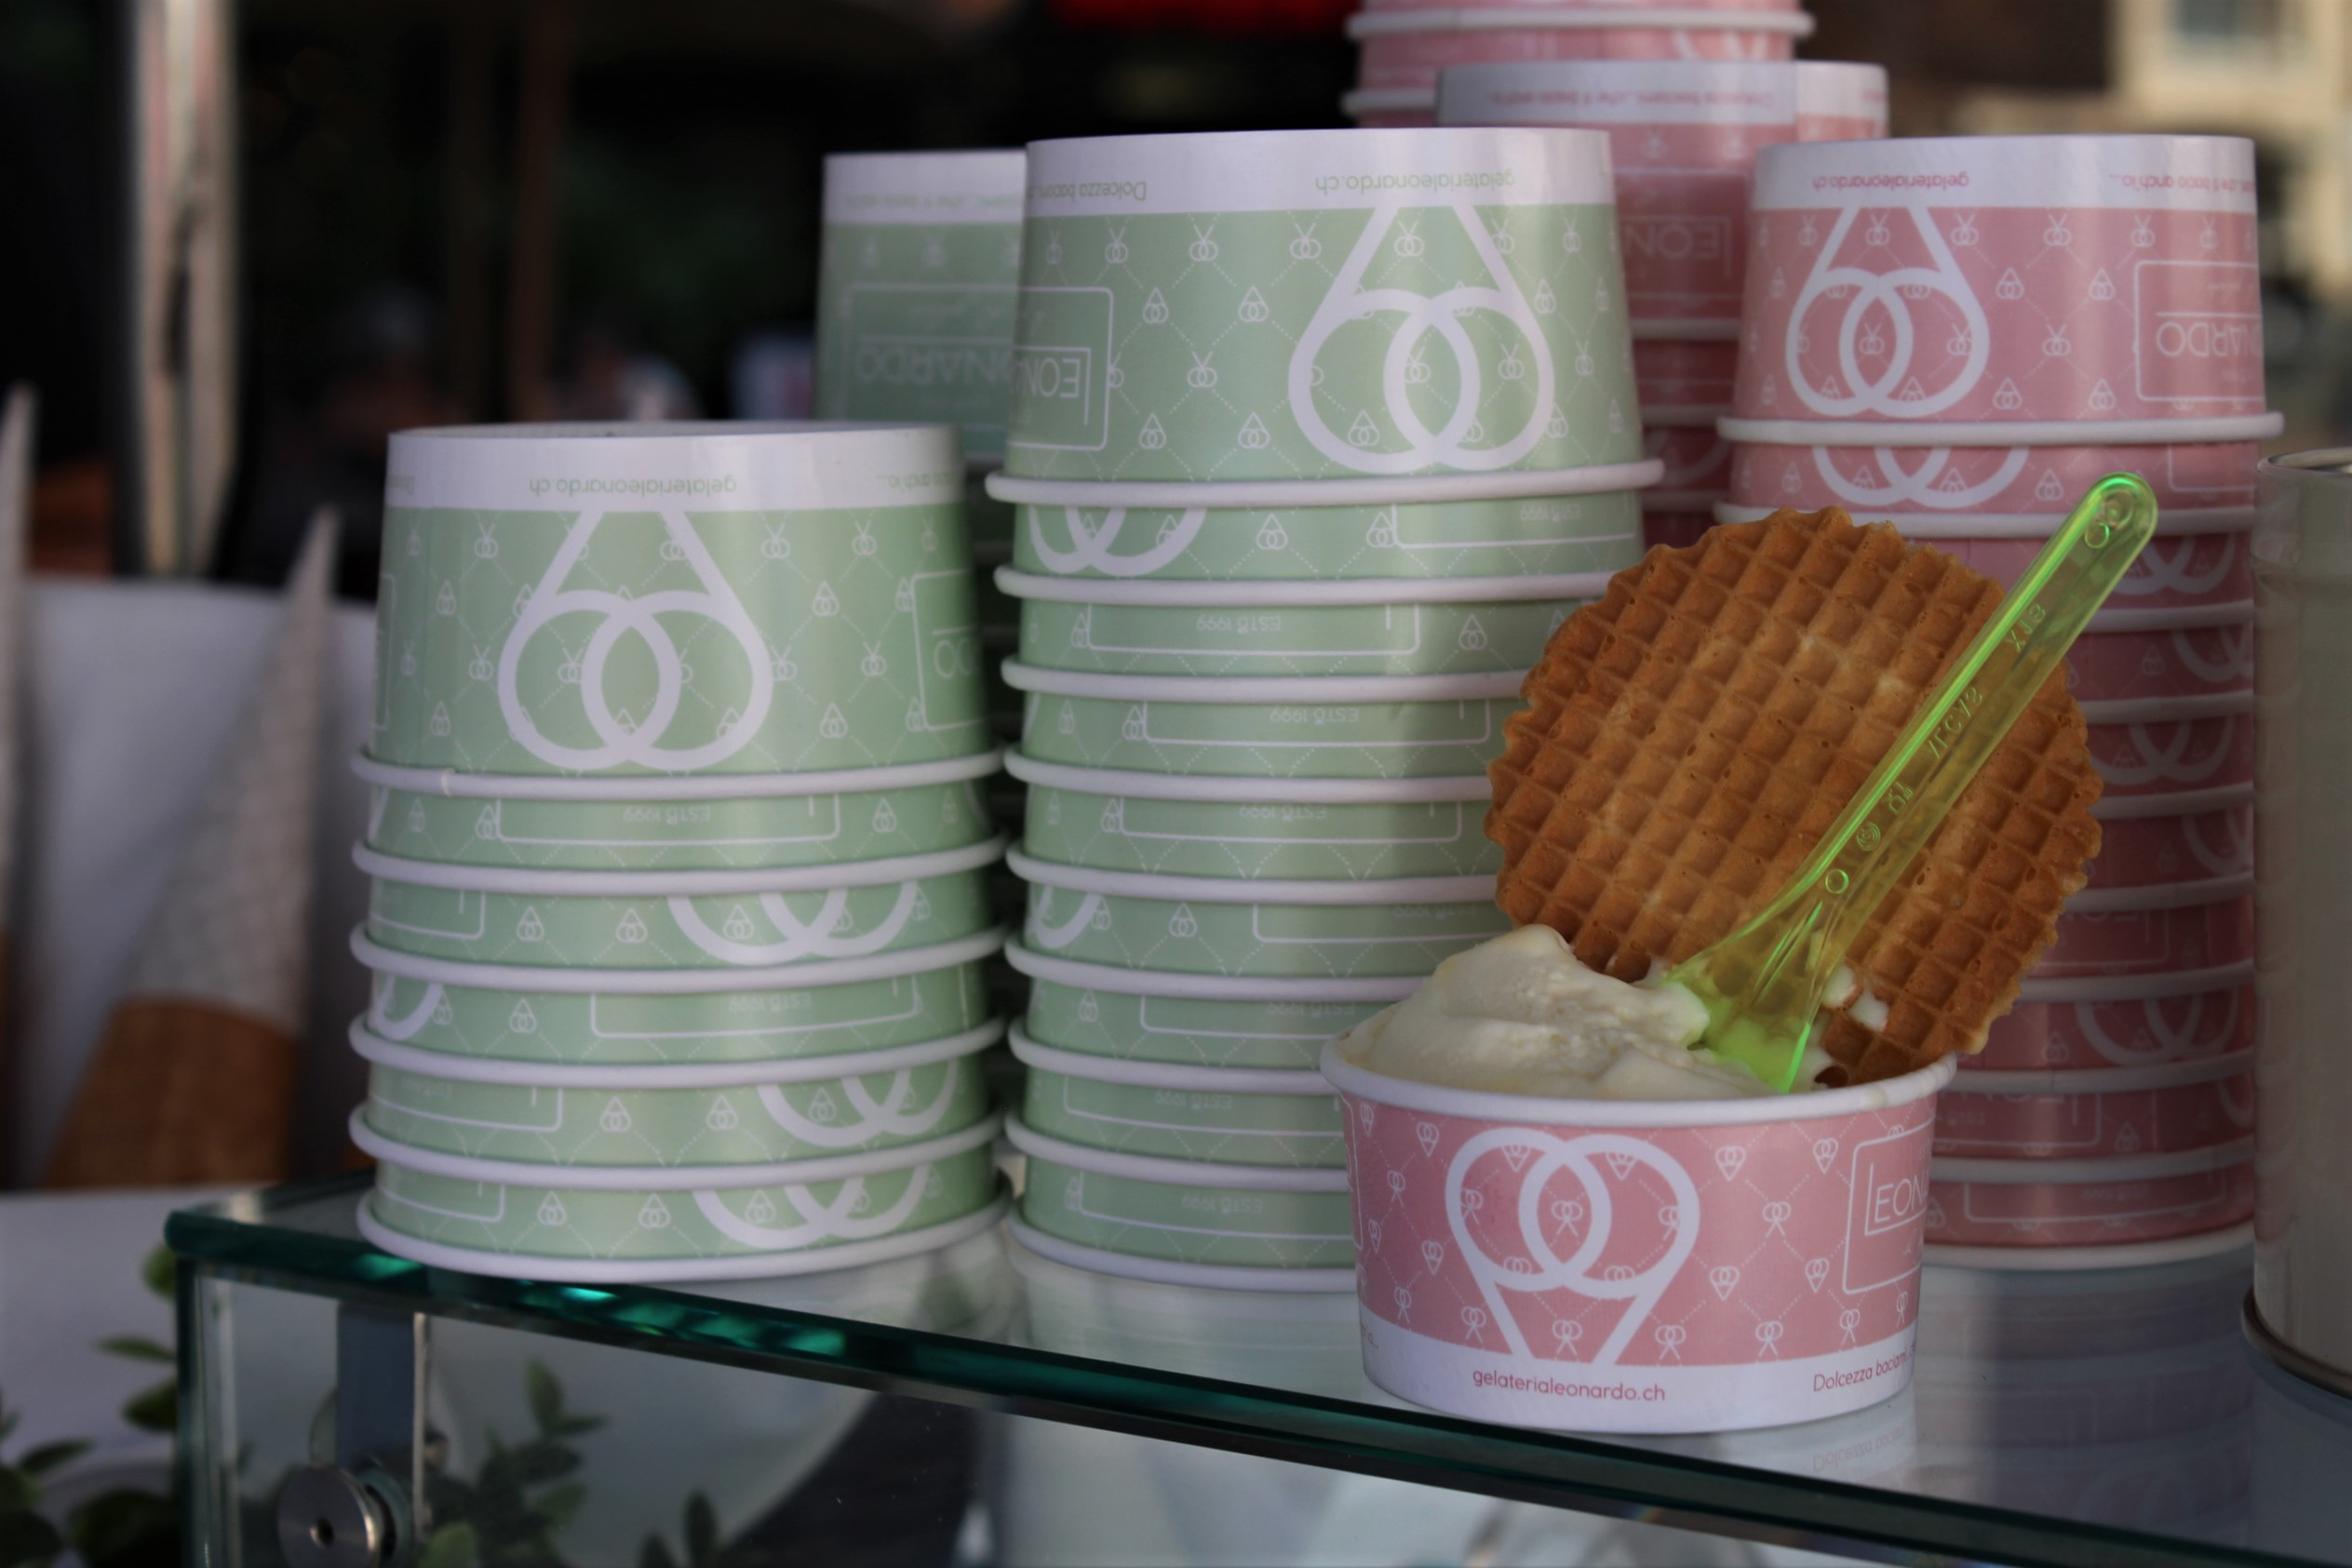 Small scoop of ice cream in front of stacks of pink and green paper cups